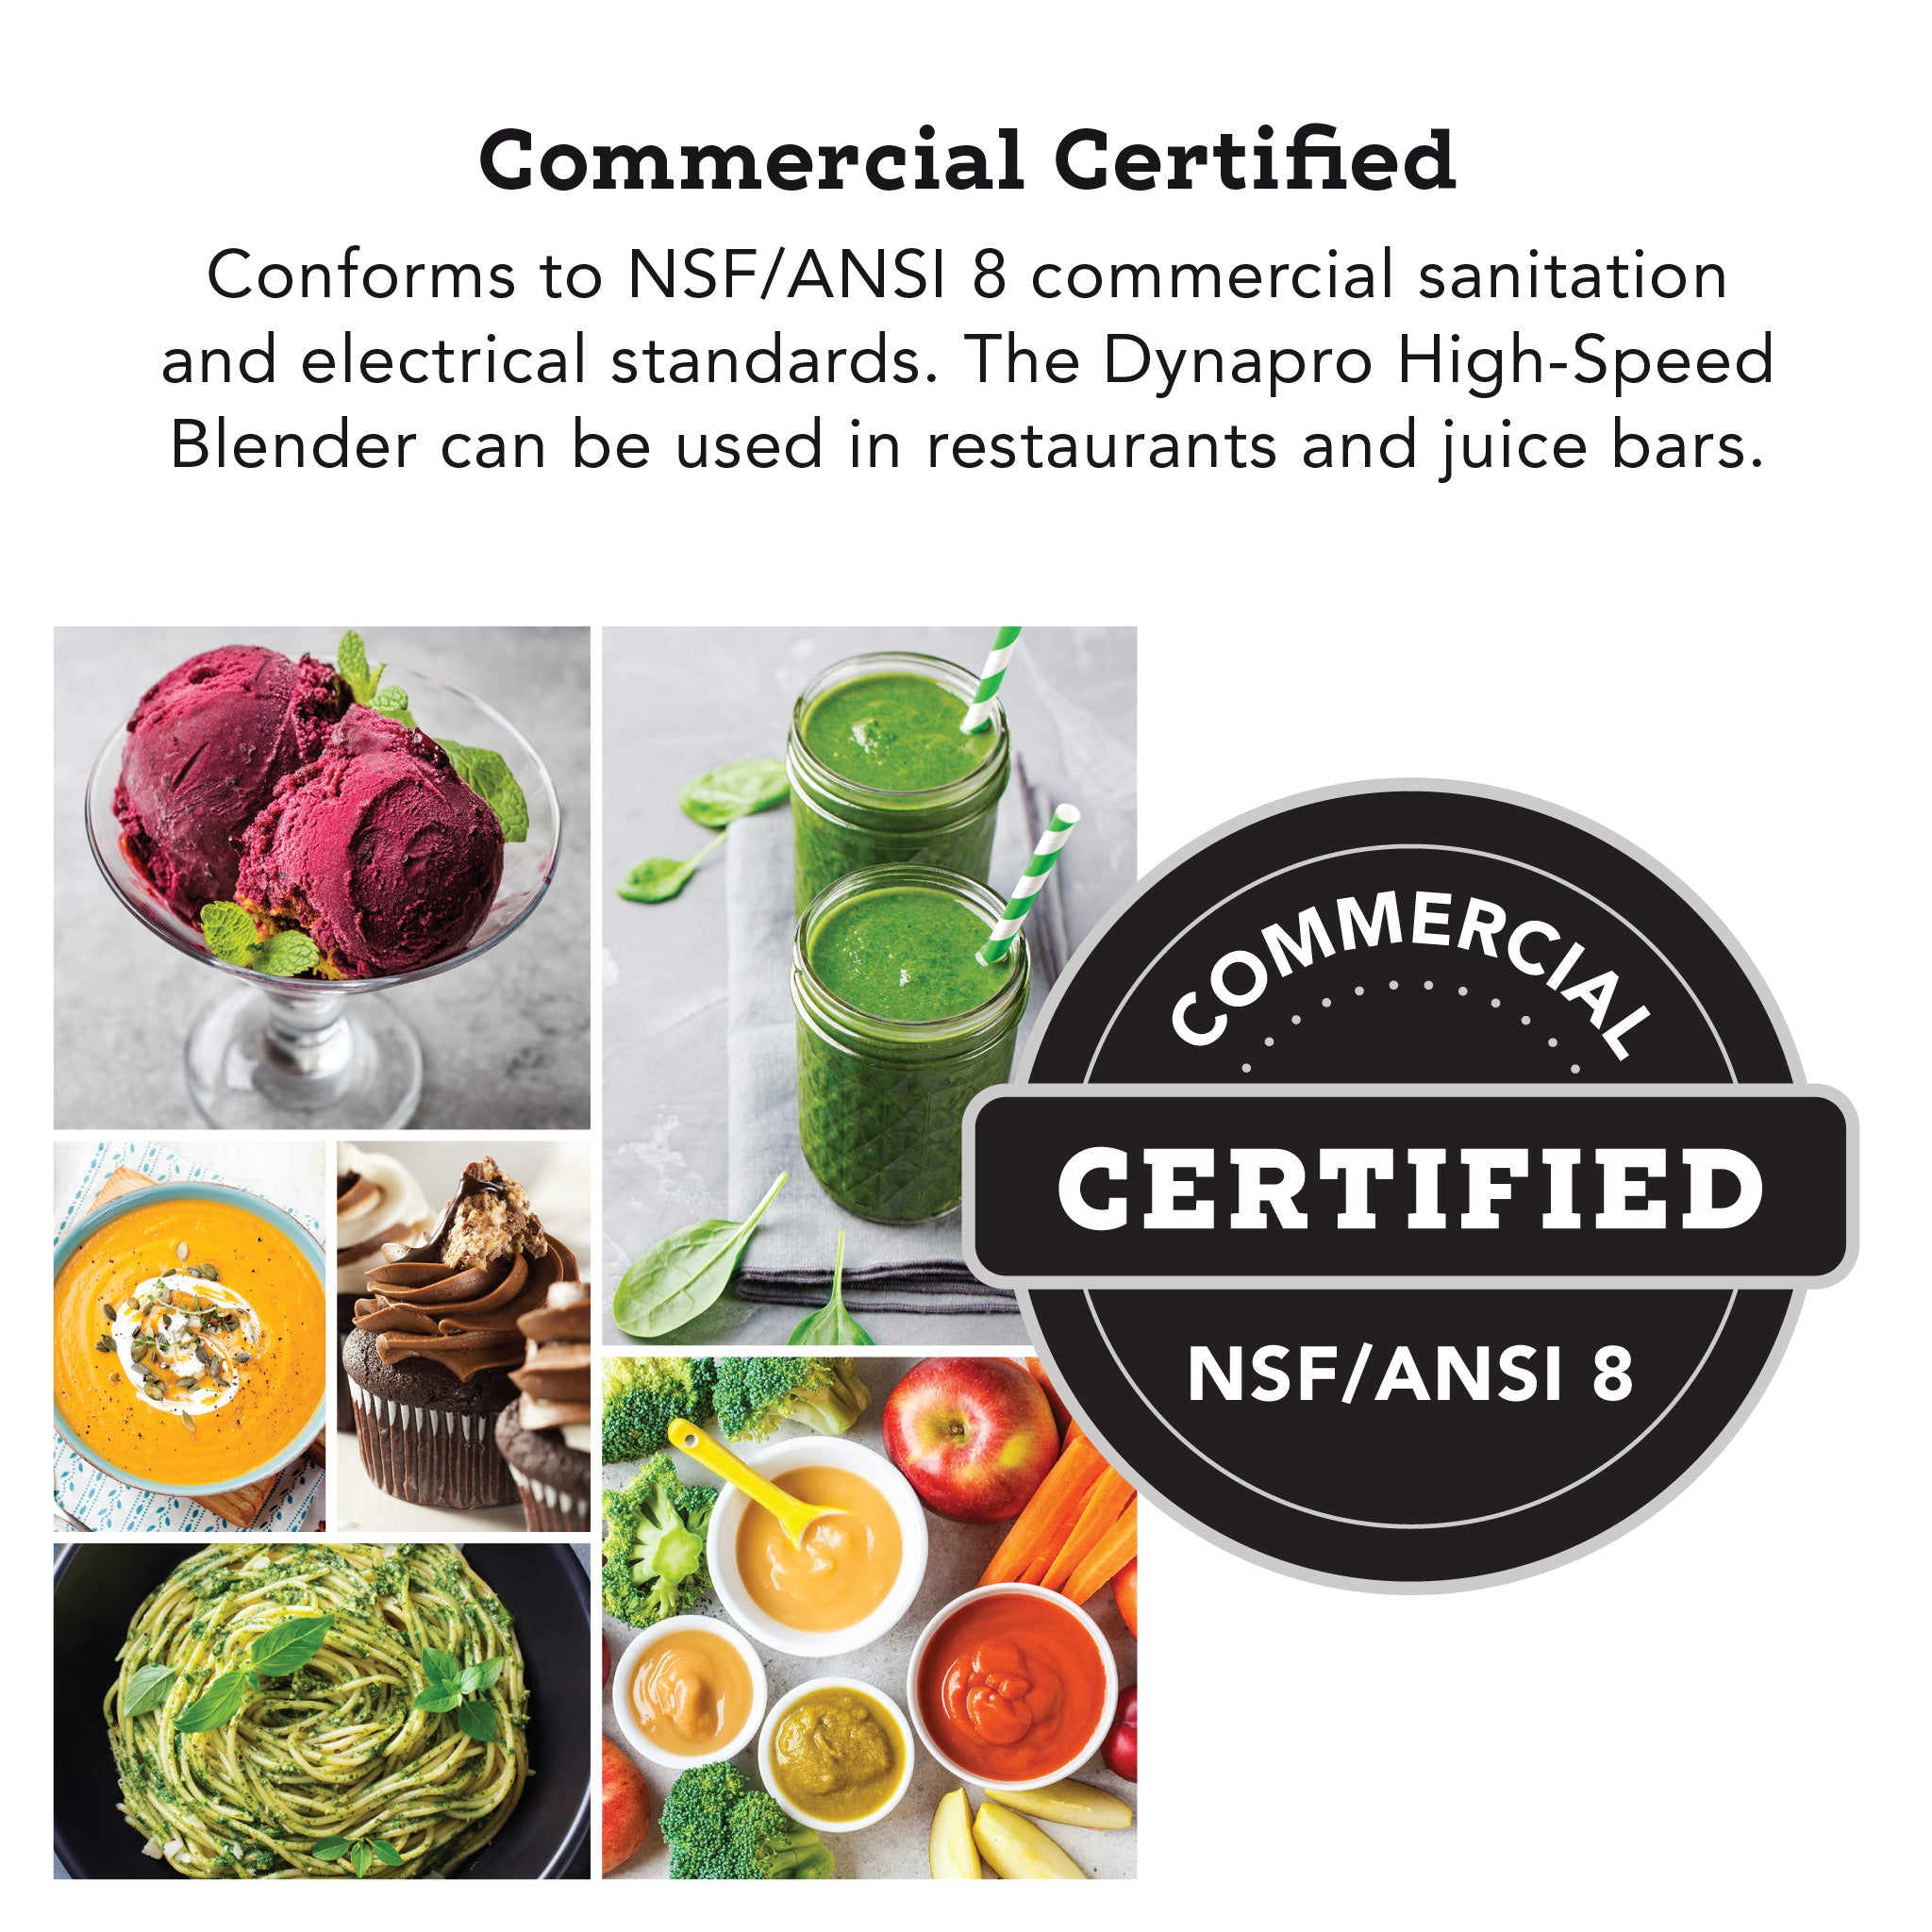 Dynapro® Commercial High-Speed Blender in Gray - Commercial Certified NSF/ANSI 8